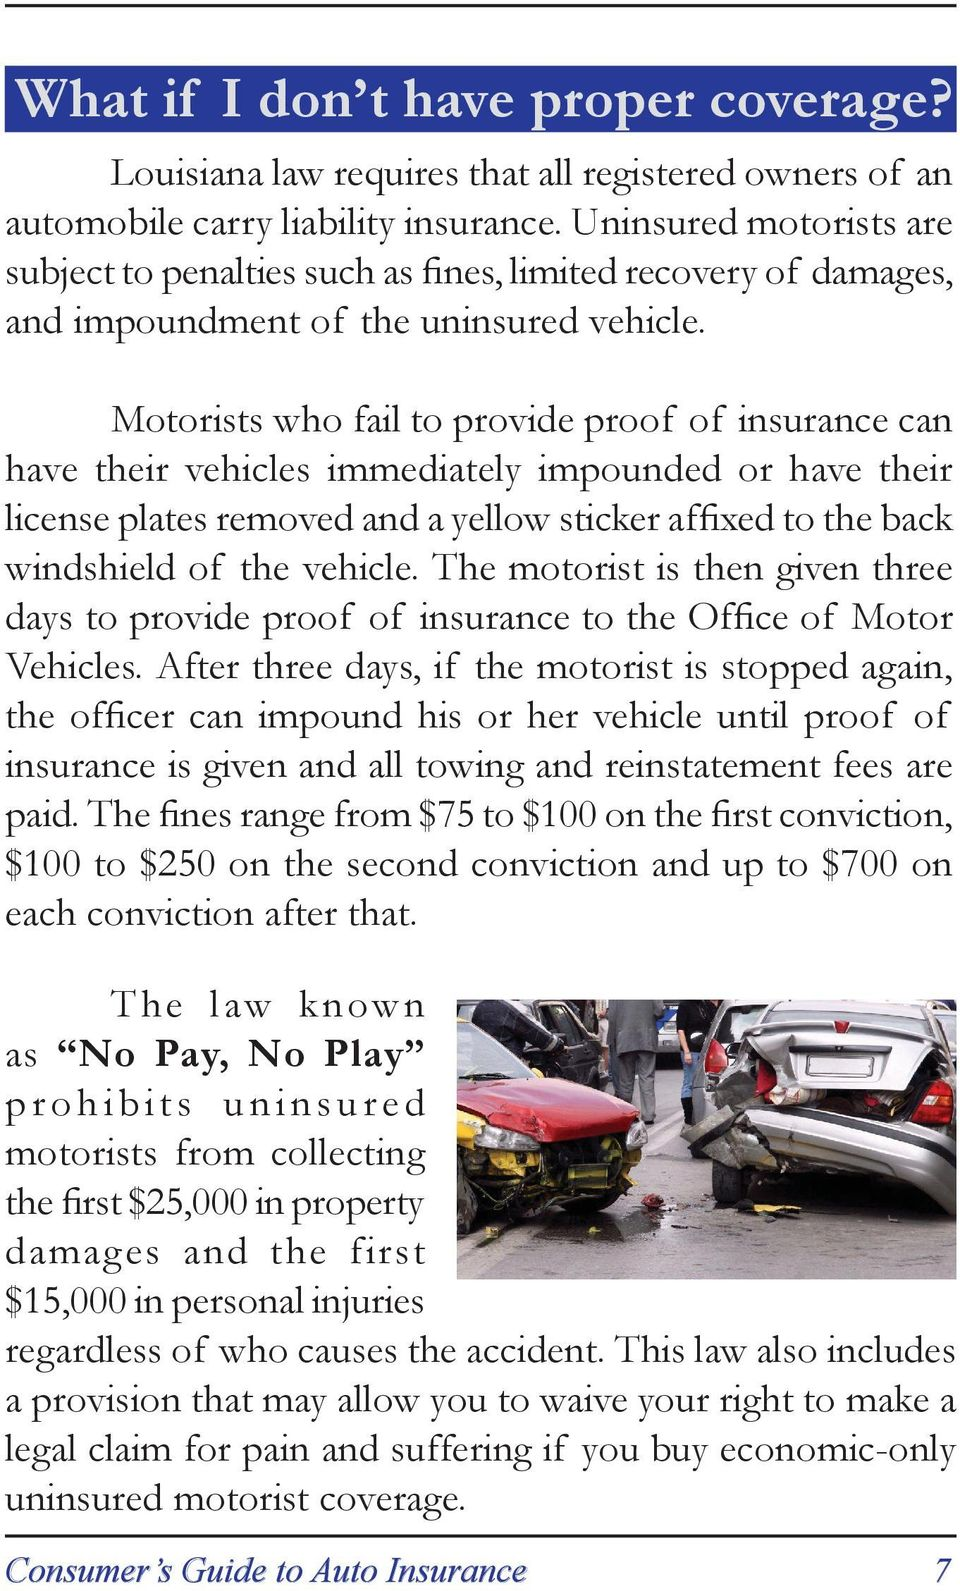 Motorists who fail to provide proof of insurance can have their vehicles immediately impounded or have their license plates removed and a yellow sticker affixed to the back windshield of the vehicle.